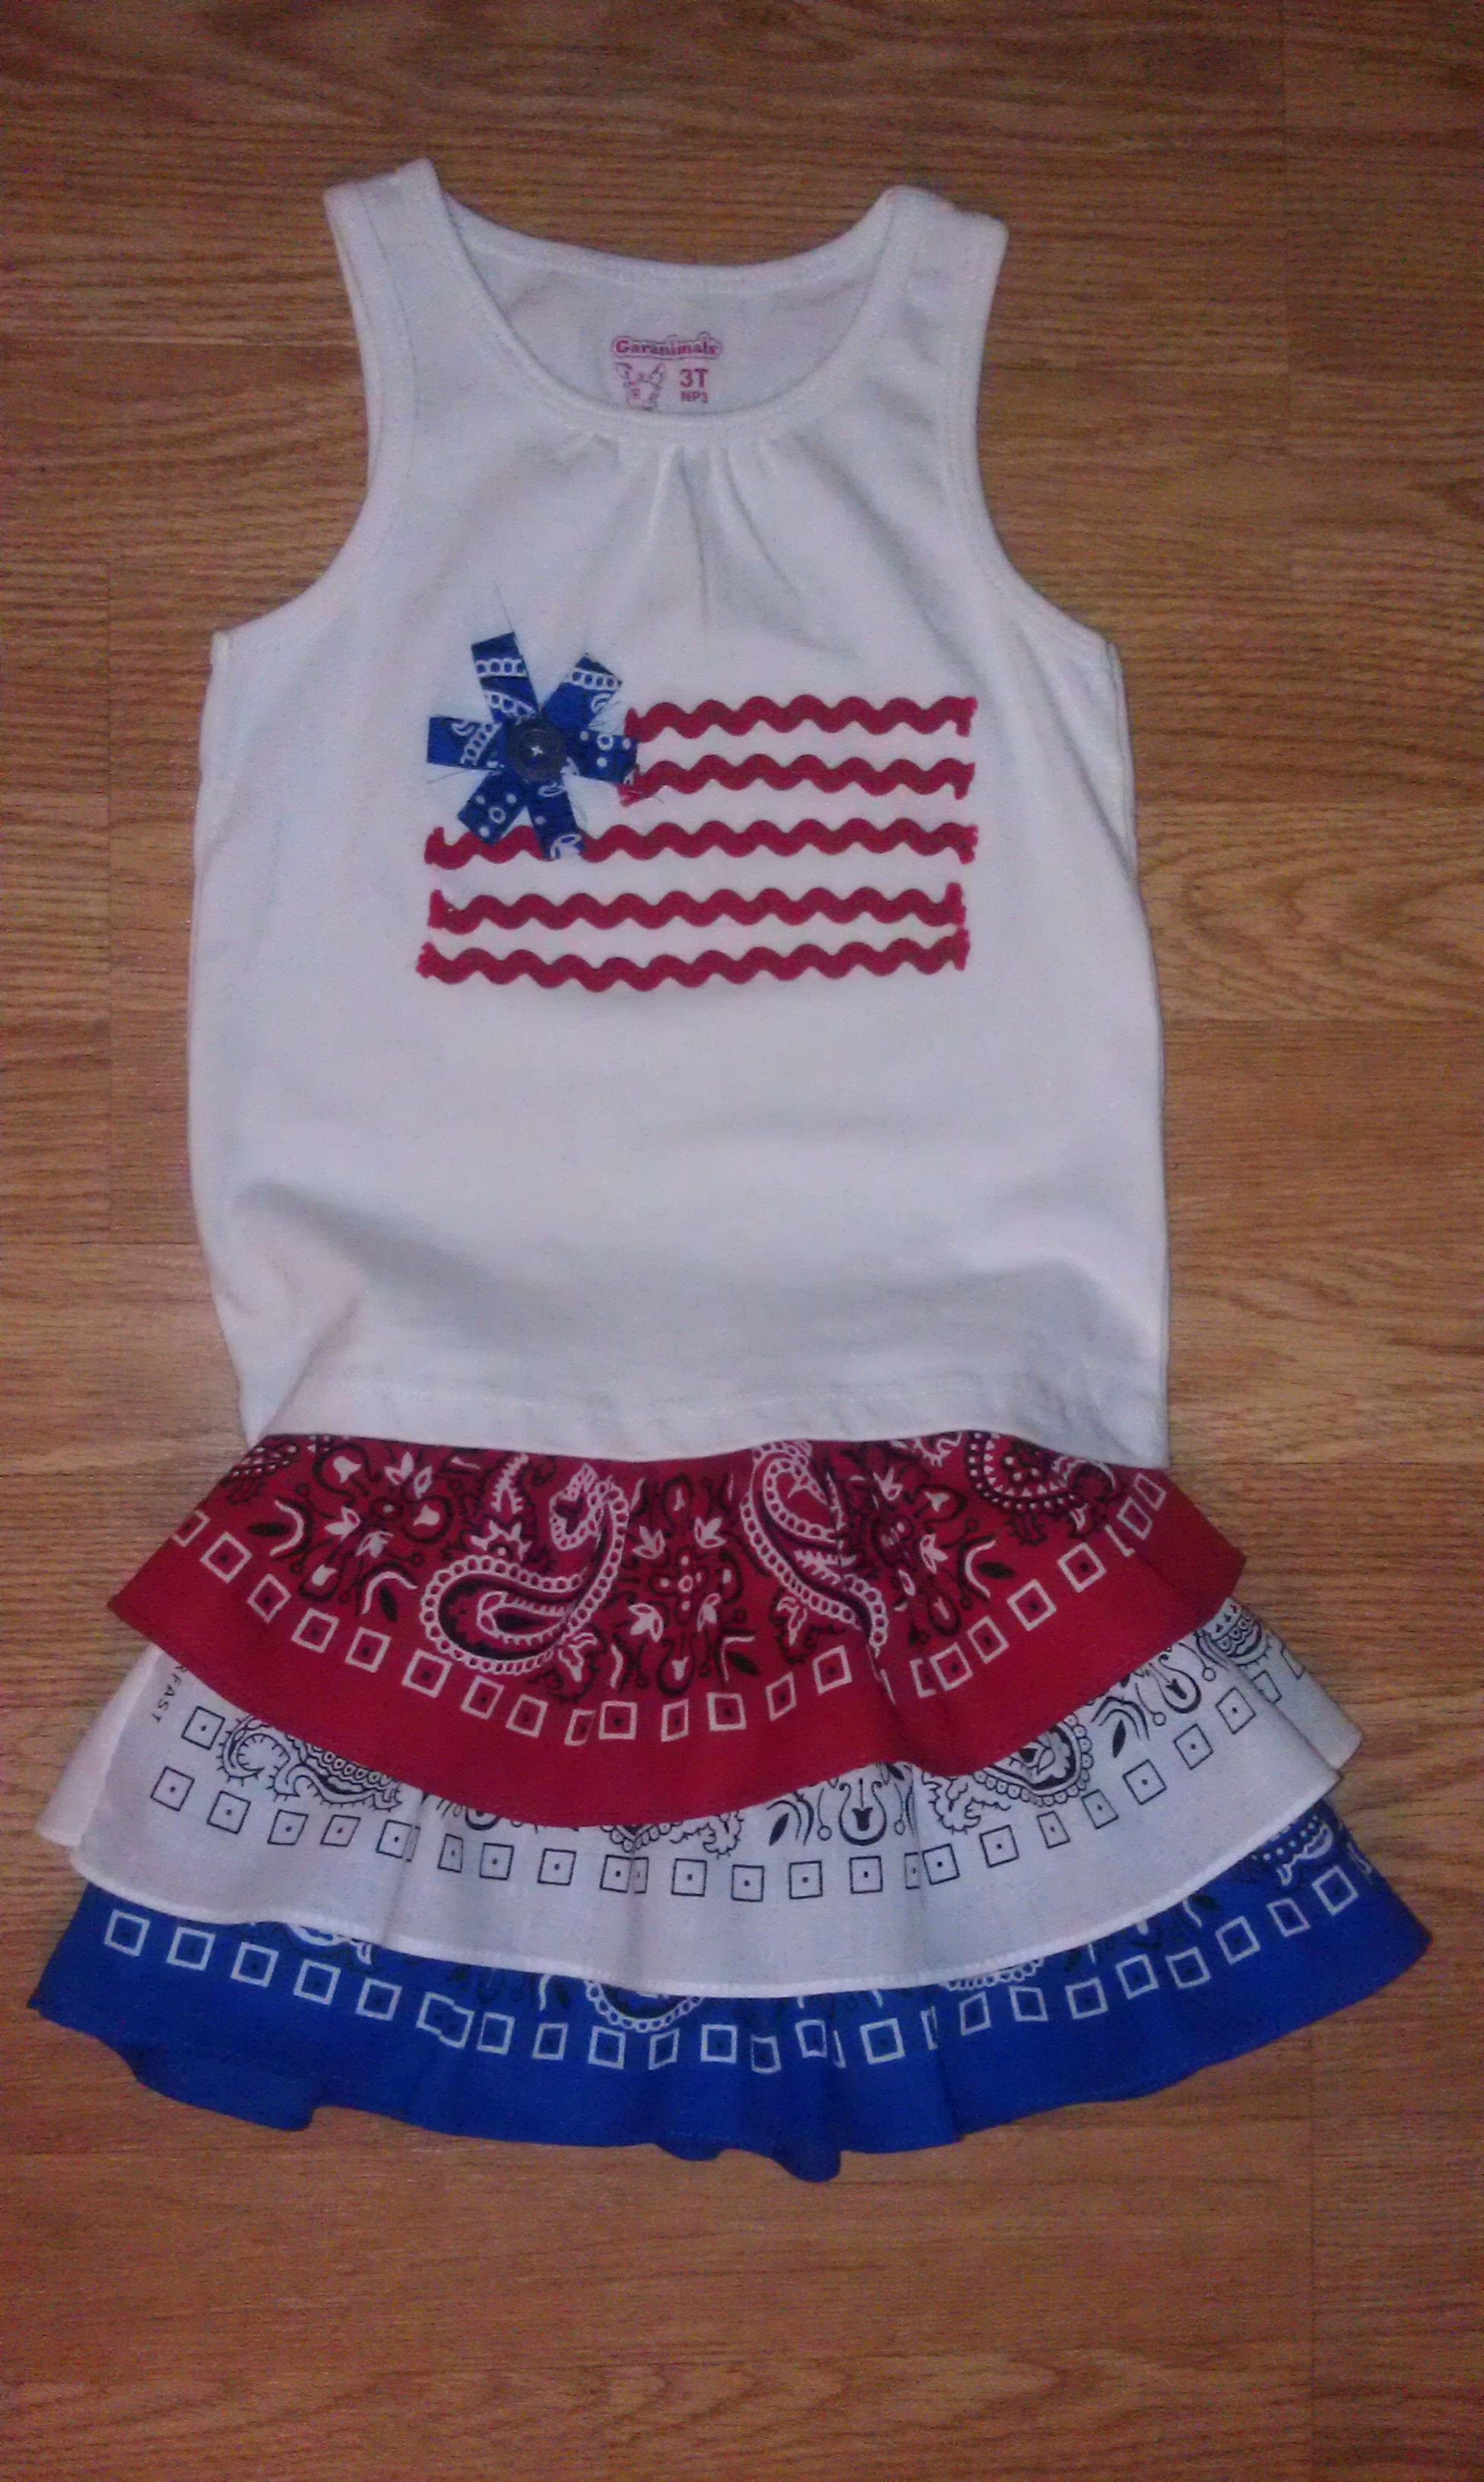 Best ideas about DIY 4Th Of July Outfits . Save or Pin DIY 4th of July outfit stars & stripes Now.